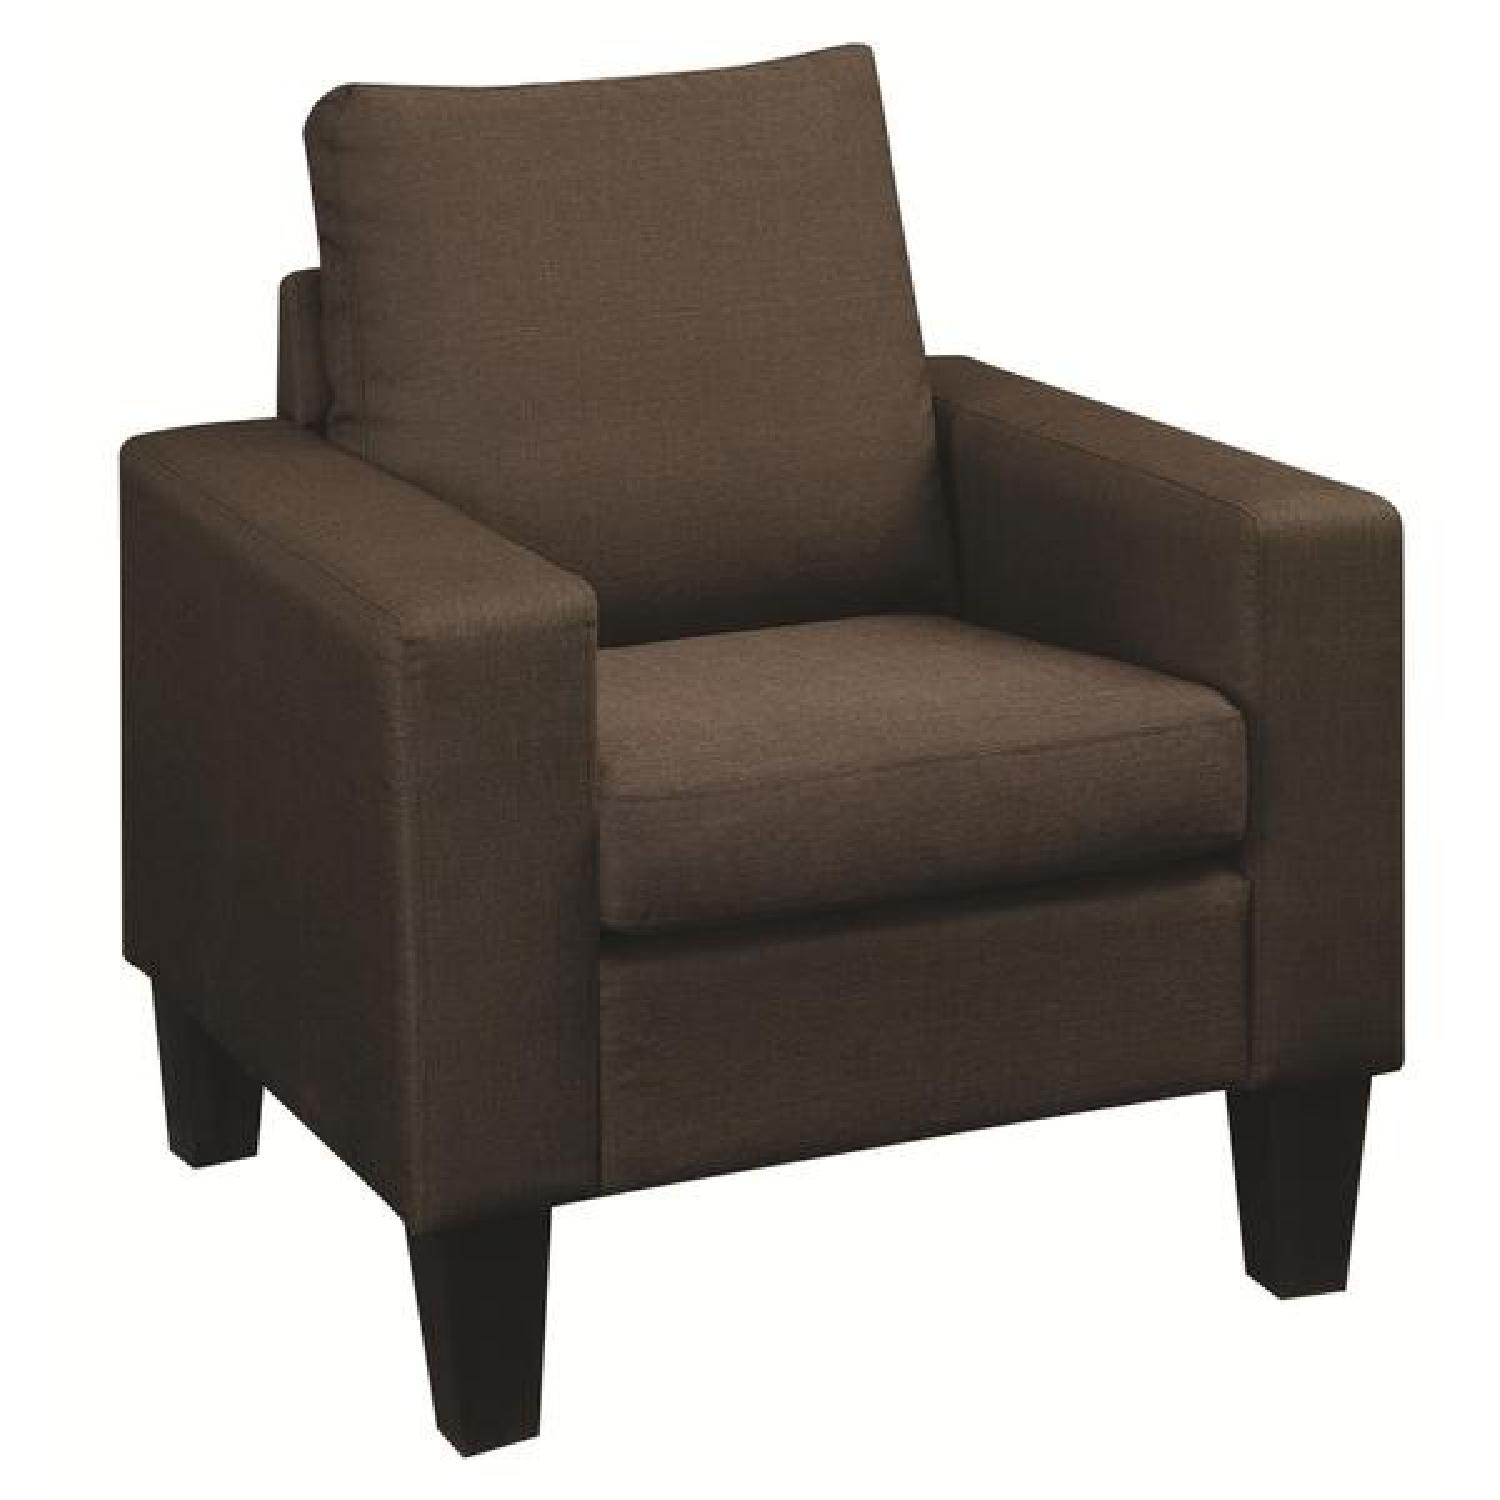 Arm Chair in Brown Linen Fabric